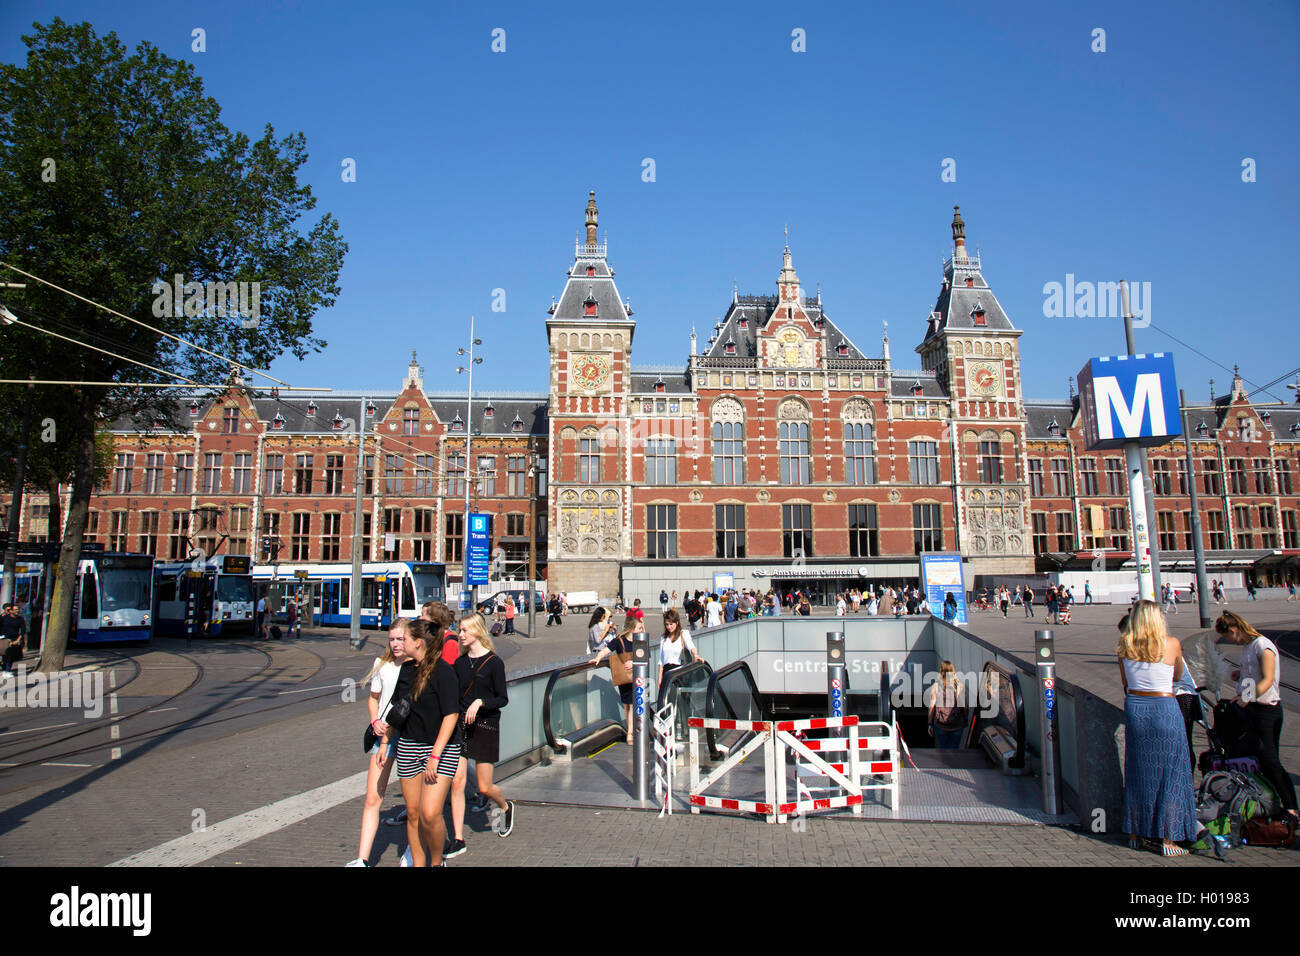 Amsterdam Centraal Station - Stock Image